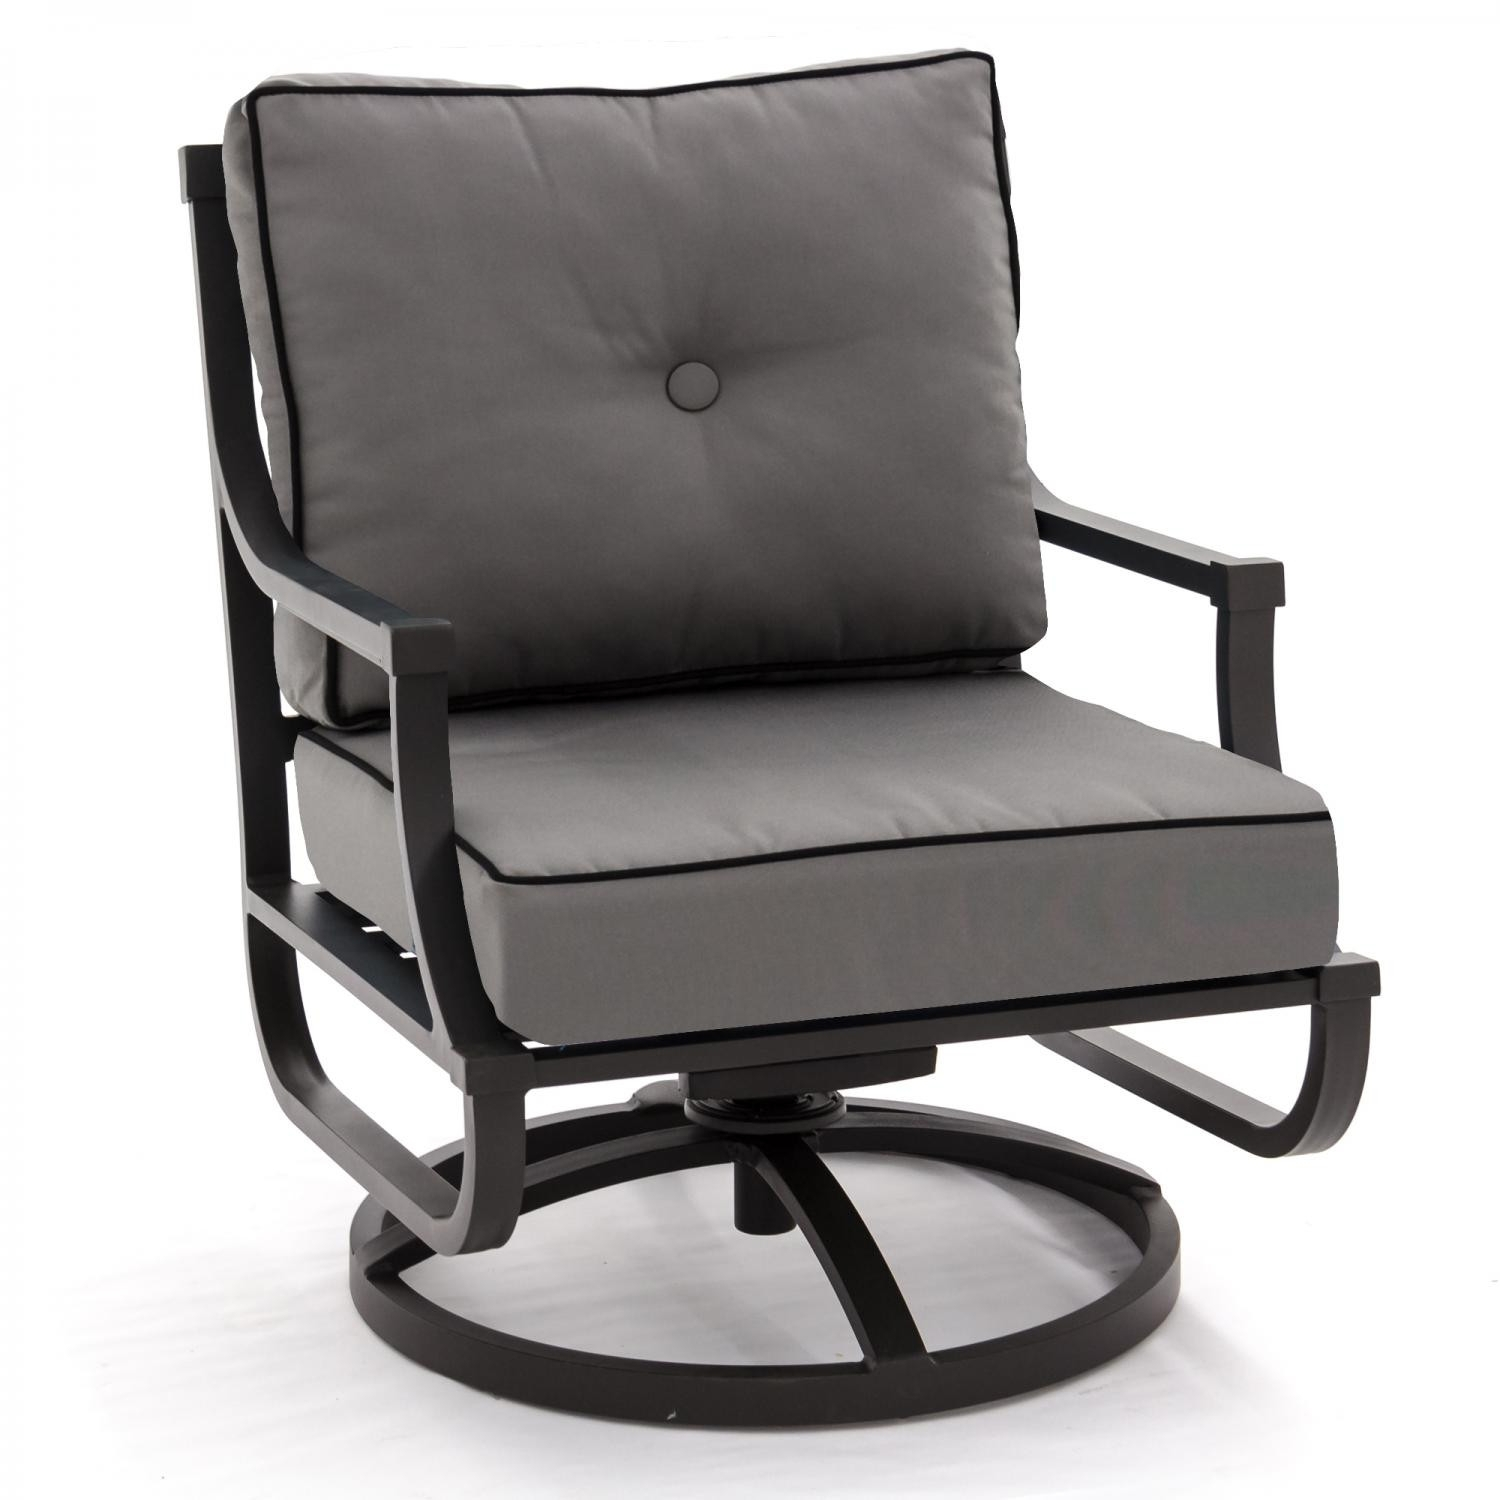 Swivel Rocker Patio Chairs Hampton Bay Rocking Chair Wicker – Home Throughout Hampton Bay Rocking Patio Chairs (#15 of 15)